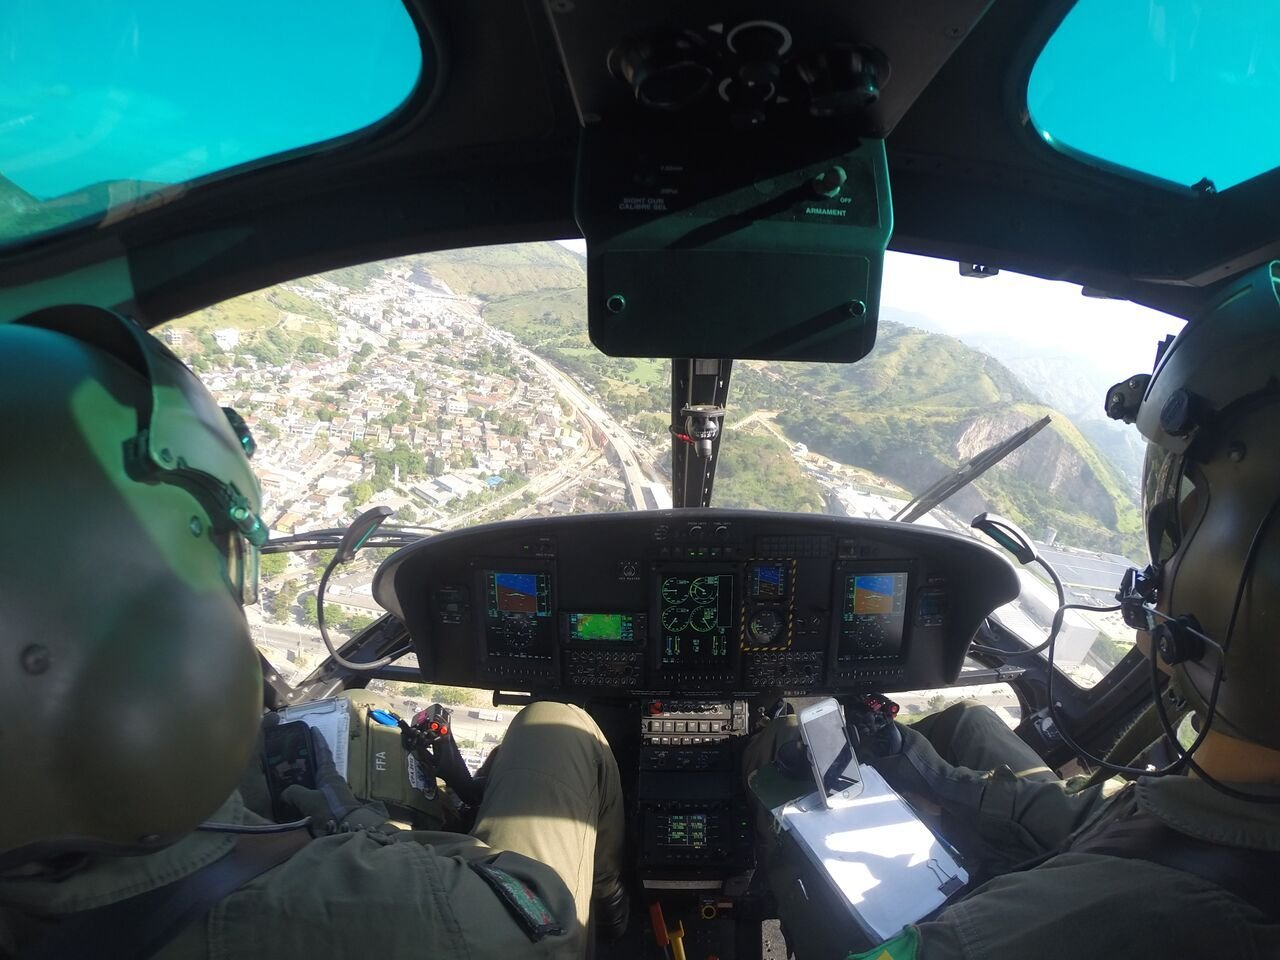 Brazilian Army Receives Upgraded Helicopters for Reconnaissance and Attack Missions